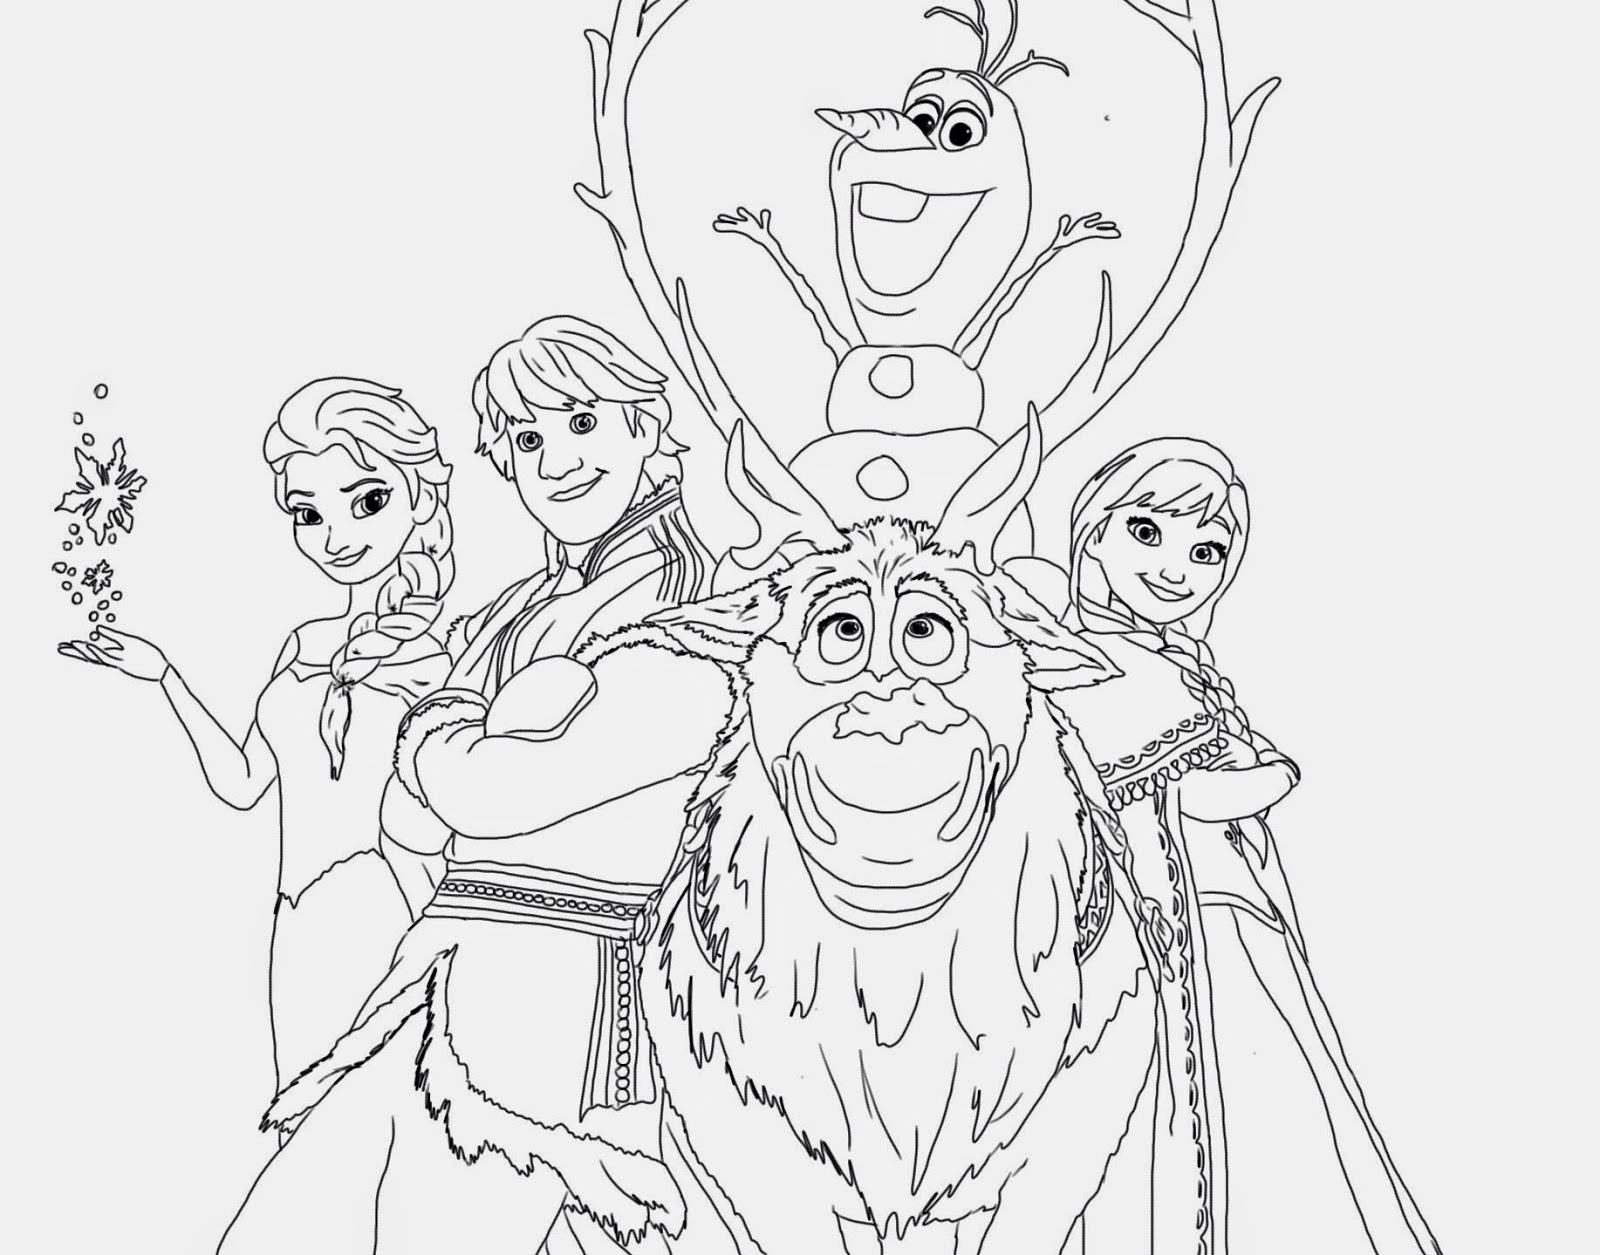 coloring pages to print frozen disney frozen coloring pages printable instant knowledge print pages coloring frozen to